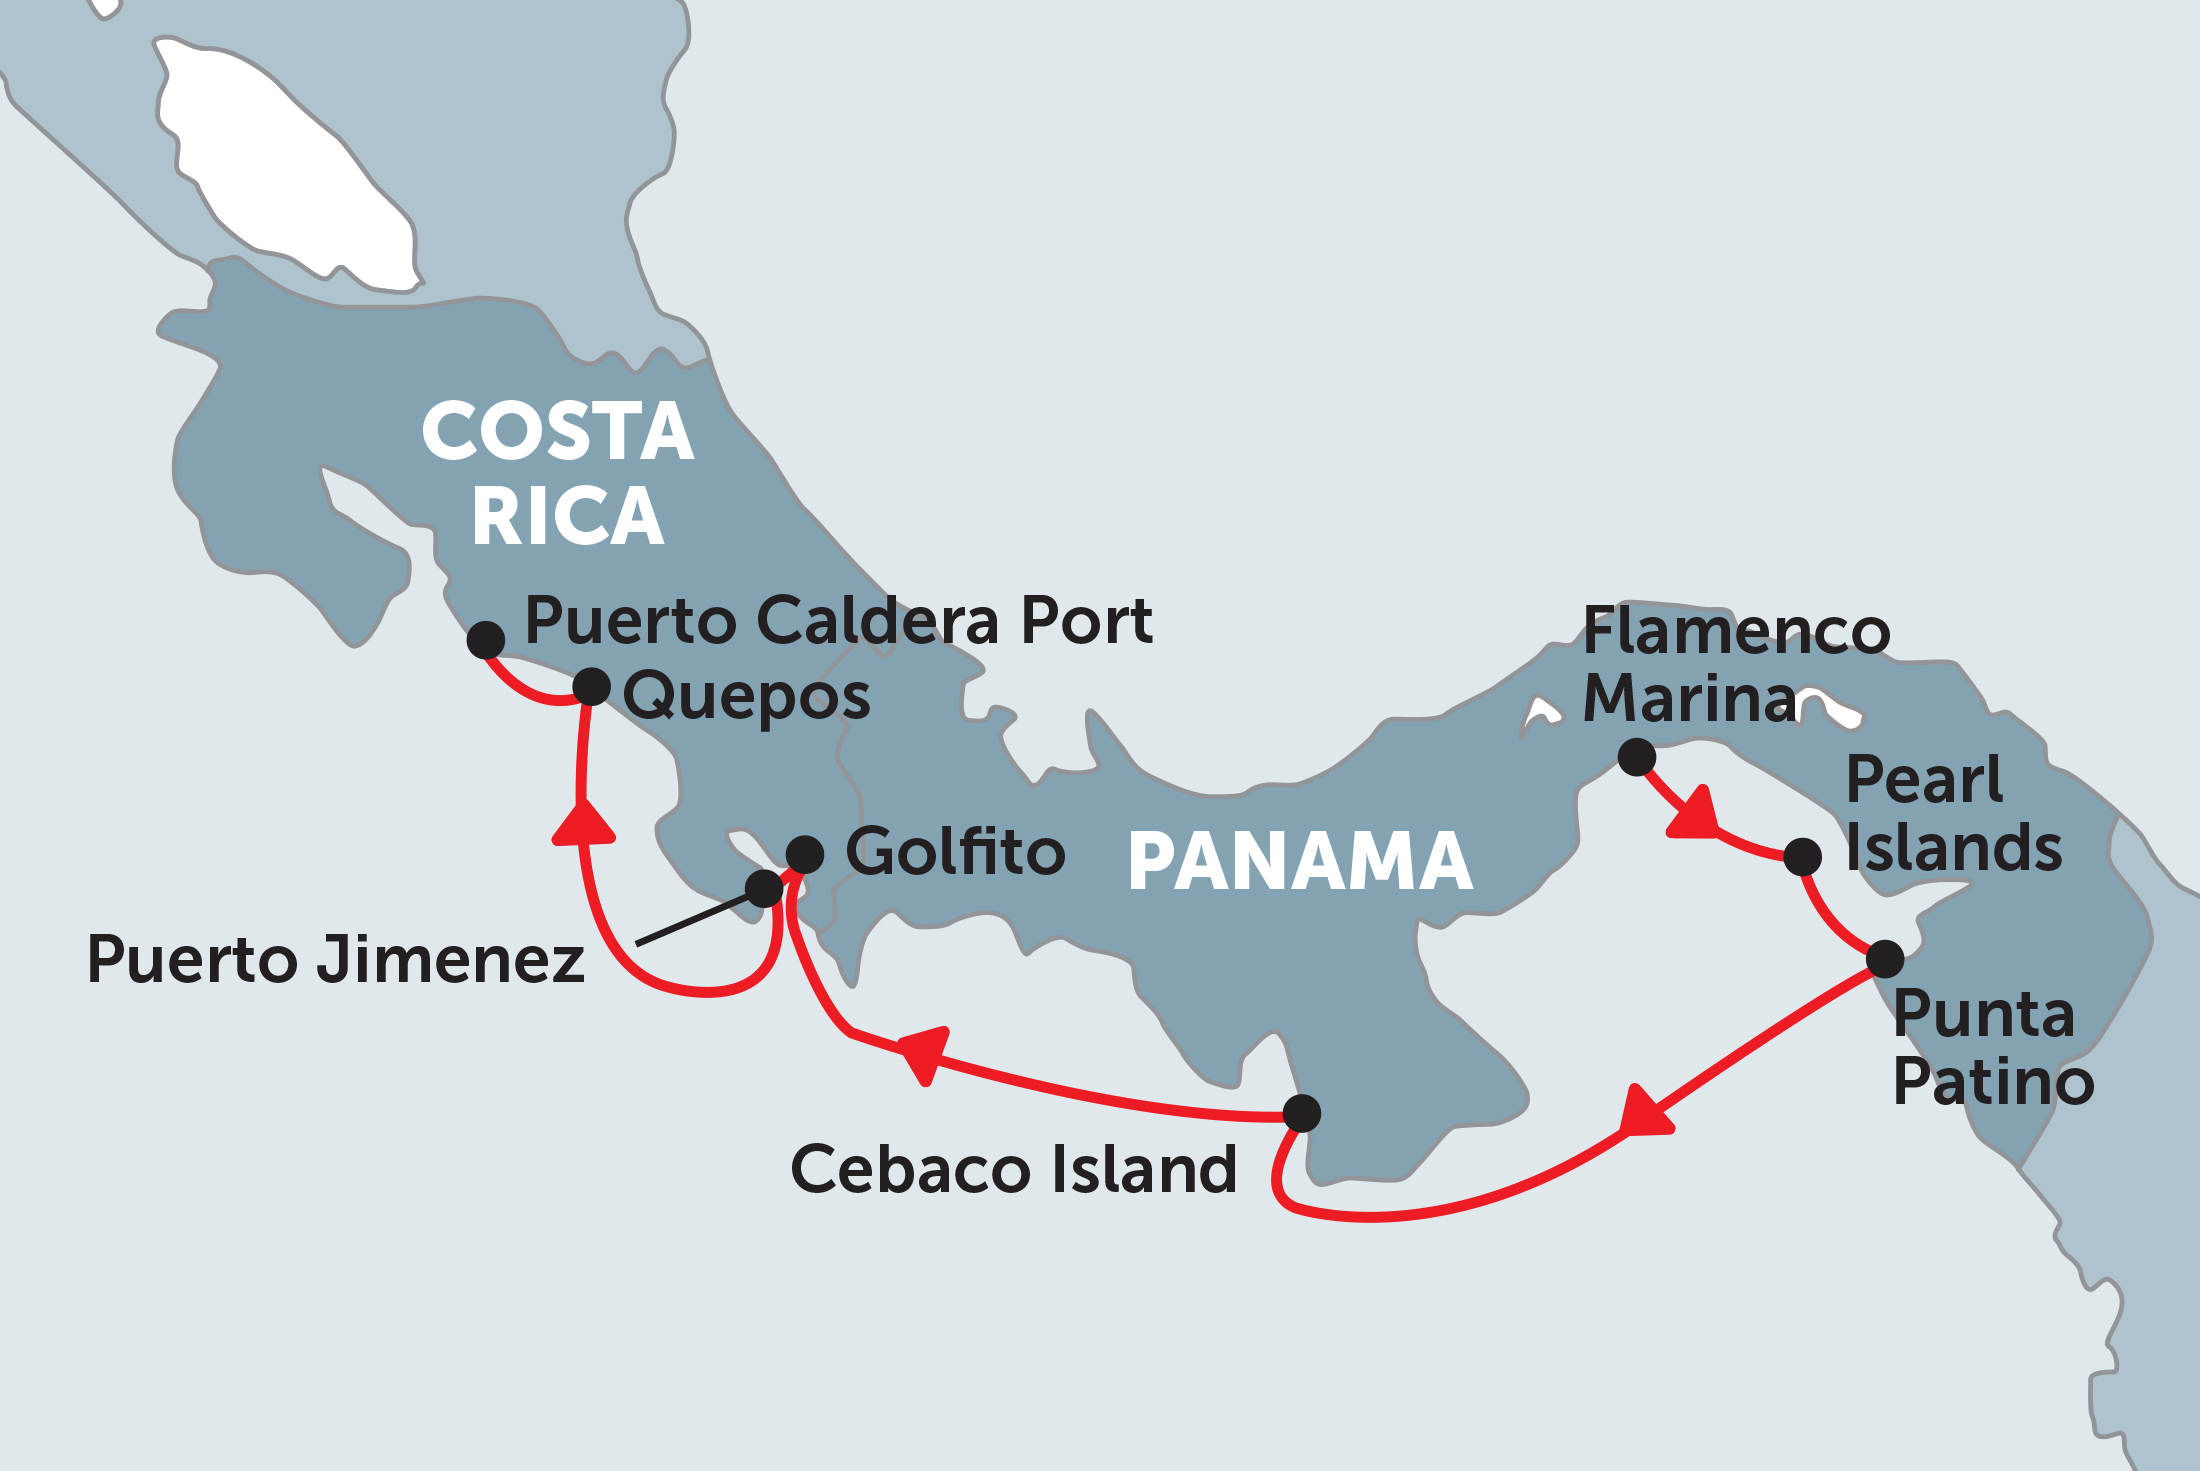 Cruising Costa Rica and Panama - Panama to Costa Rica overview | Cruising on golfito cr, weihai china map, ocala fl map, gainesville ga map, clearwater fl map, port costa ca map, spokane wa map, vero beach fl map, marble canyon az map, willow springs nc map, baltimore md map, kenora ontario map, huntington beach ca map, clinton mt map, naples fl map, golfito marina village, jupiter fl map, w palm beach fl map, niagara wi map, victoria bc map,